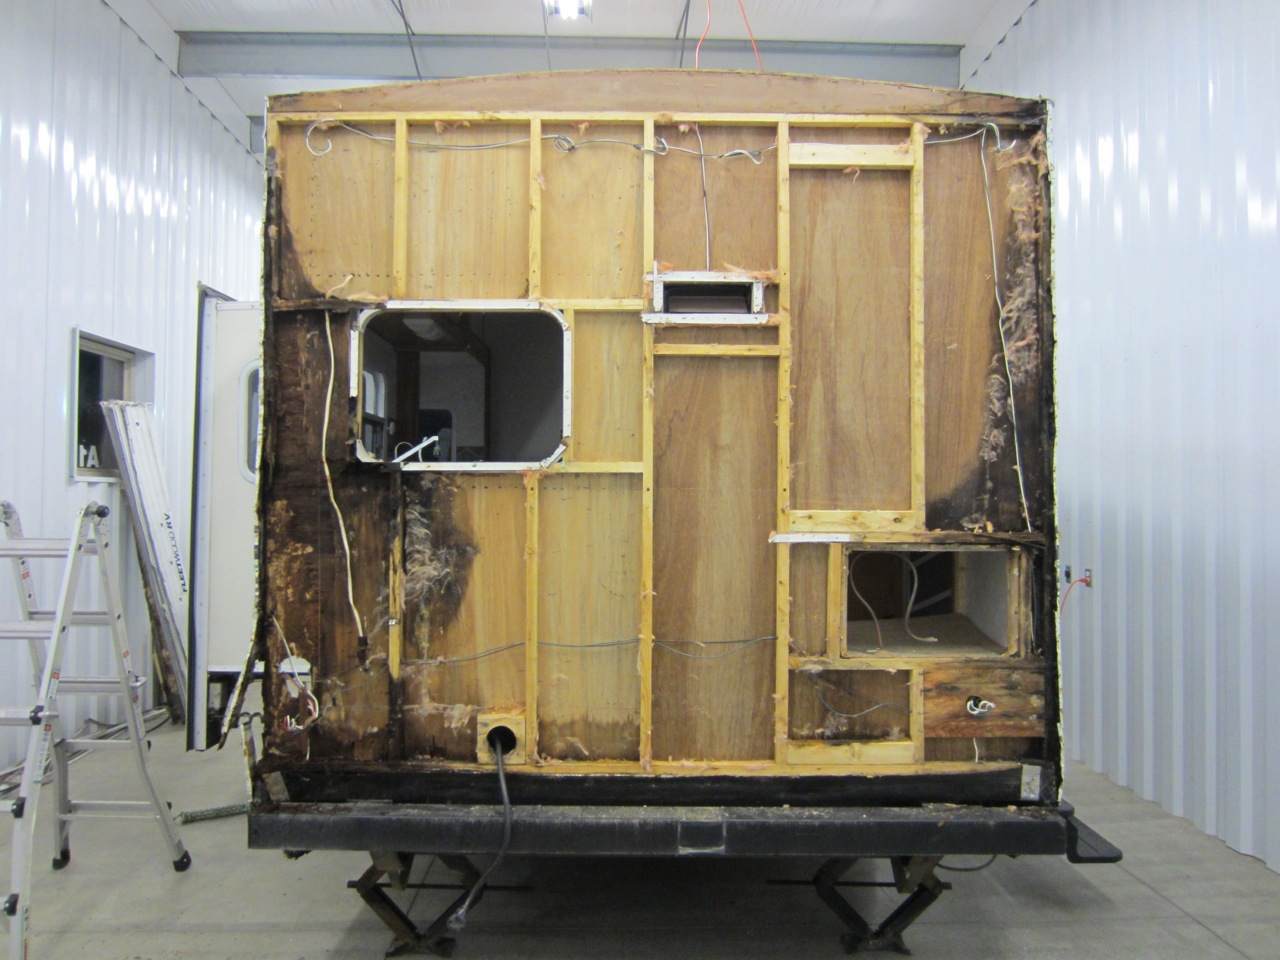 And THIS was our big, ugly surprise - the back of the RV  also has water damage!View of the back with the insulation removed. All the black wood is rotted wood.